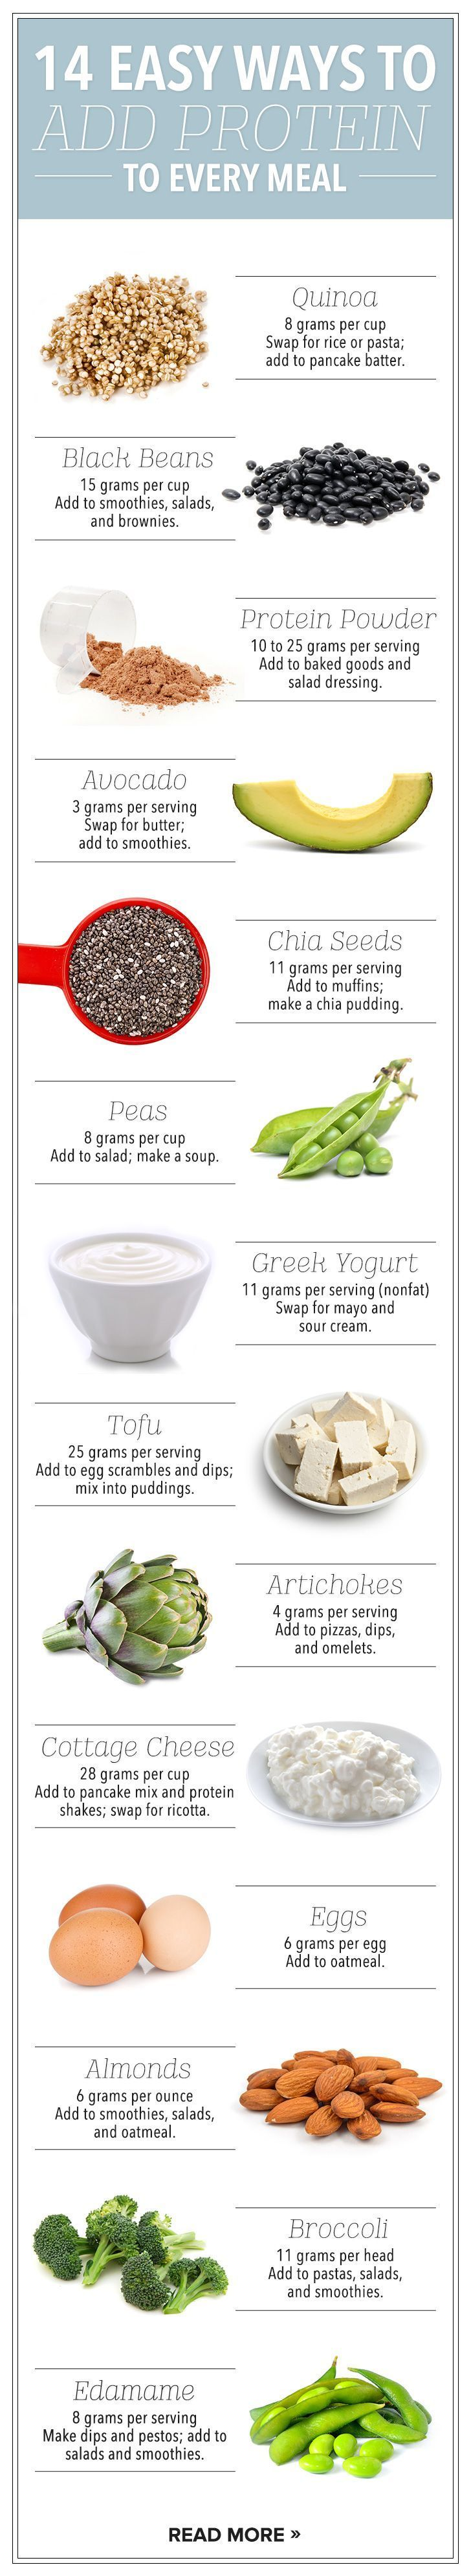 14 Easy Ways To Add Protein To Every Meal // In need of a detox? Get your teatox on with 10% off using our discount code 'PINTEREST10' at www.skinnymetea.com